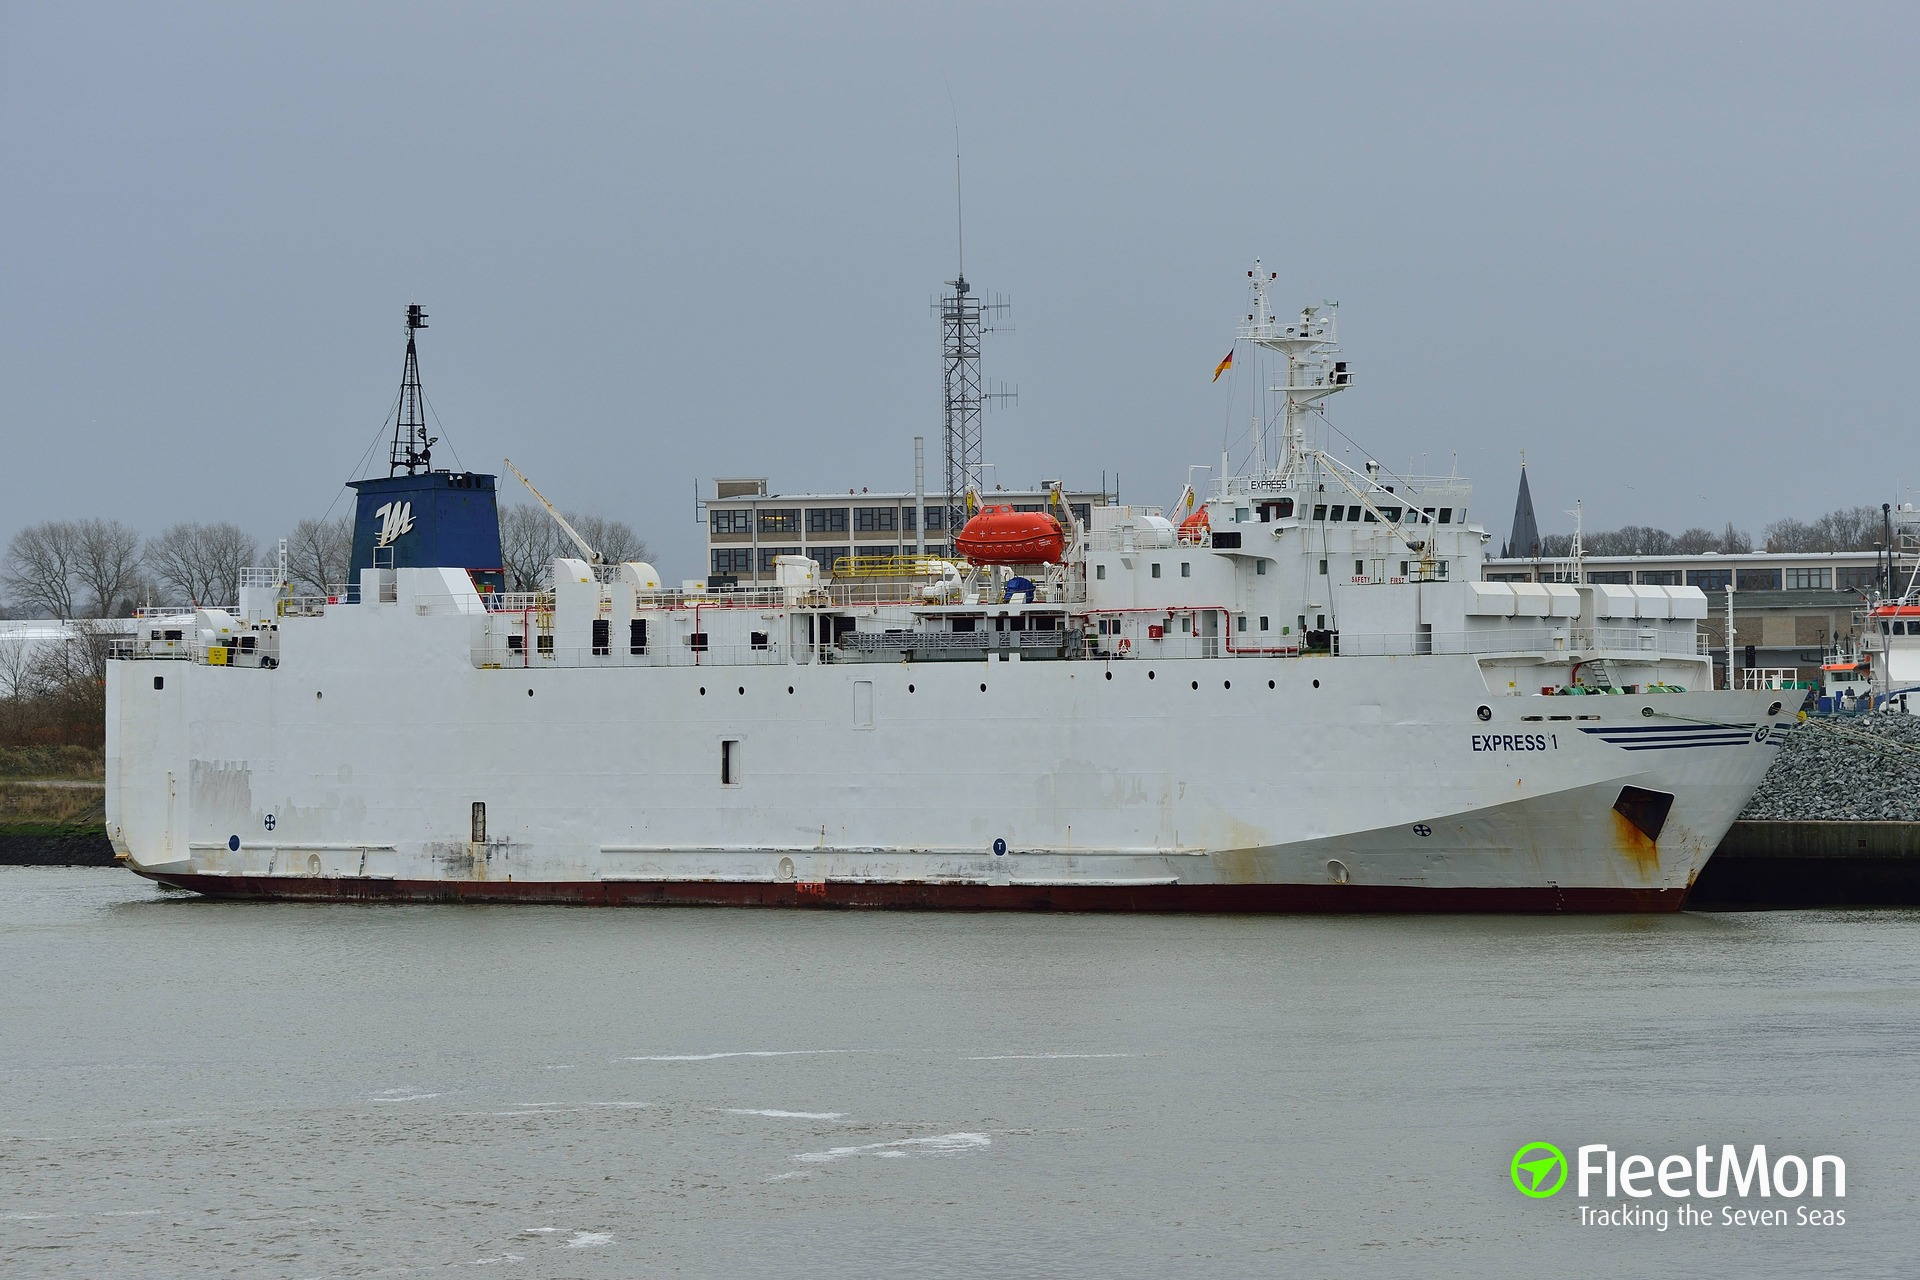 Live stock carrier Express 1 disabled, Elbe